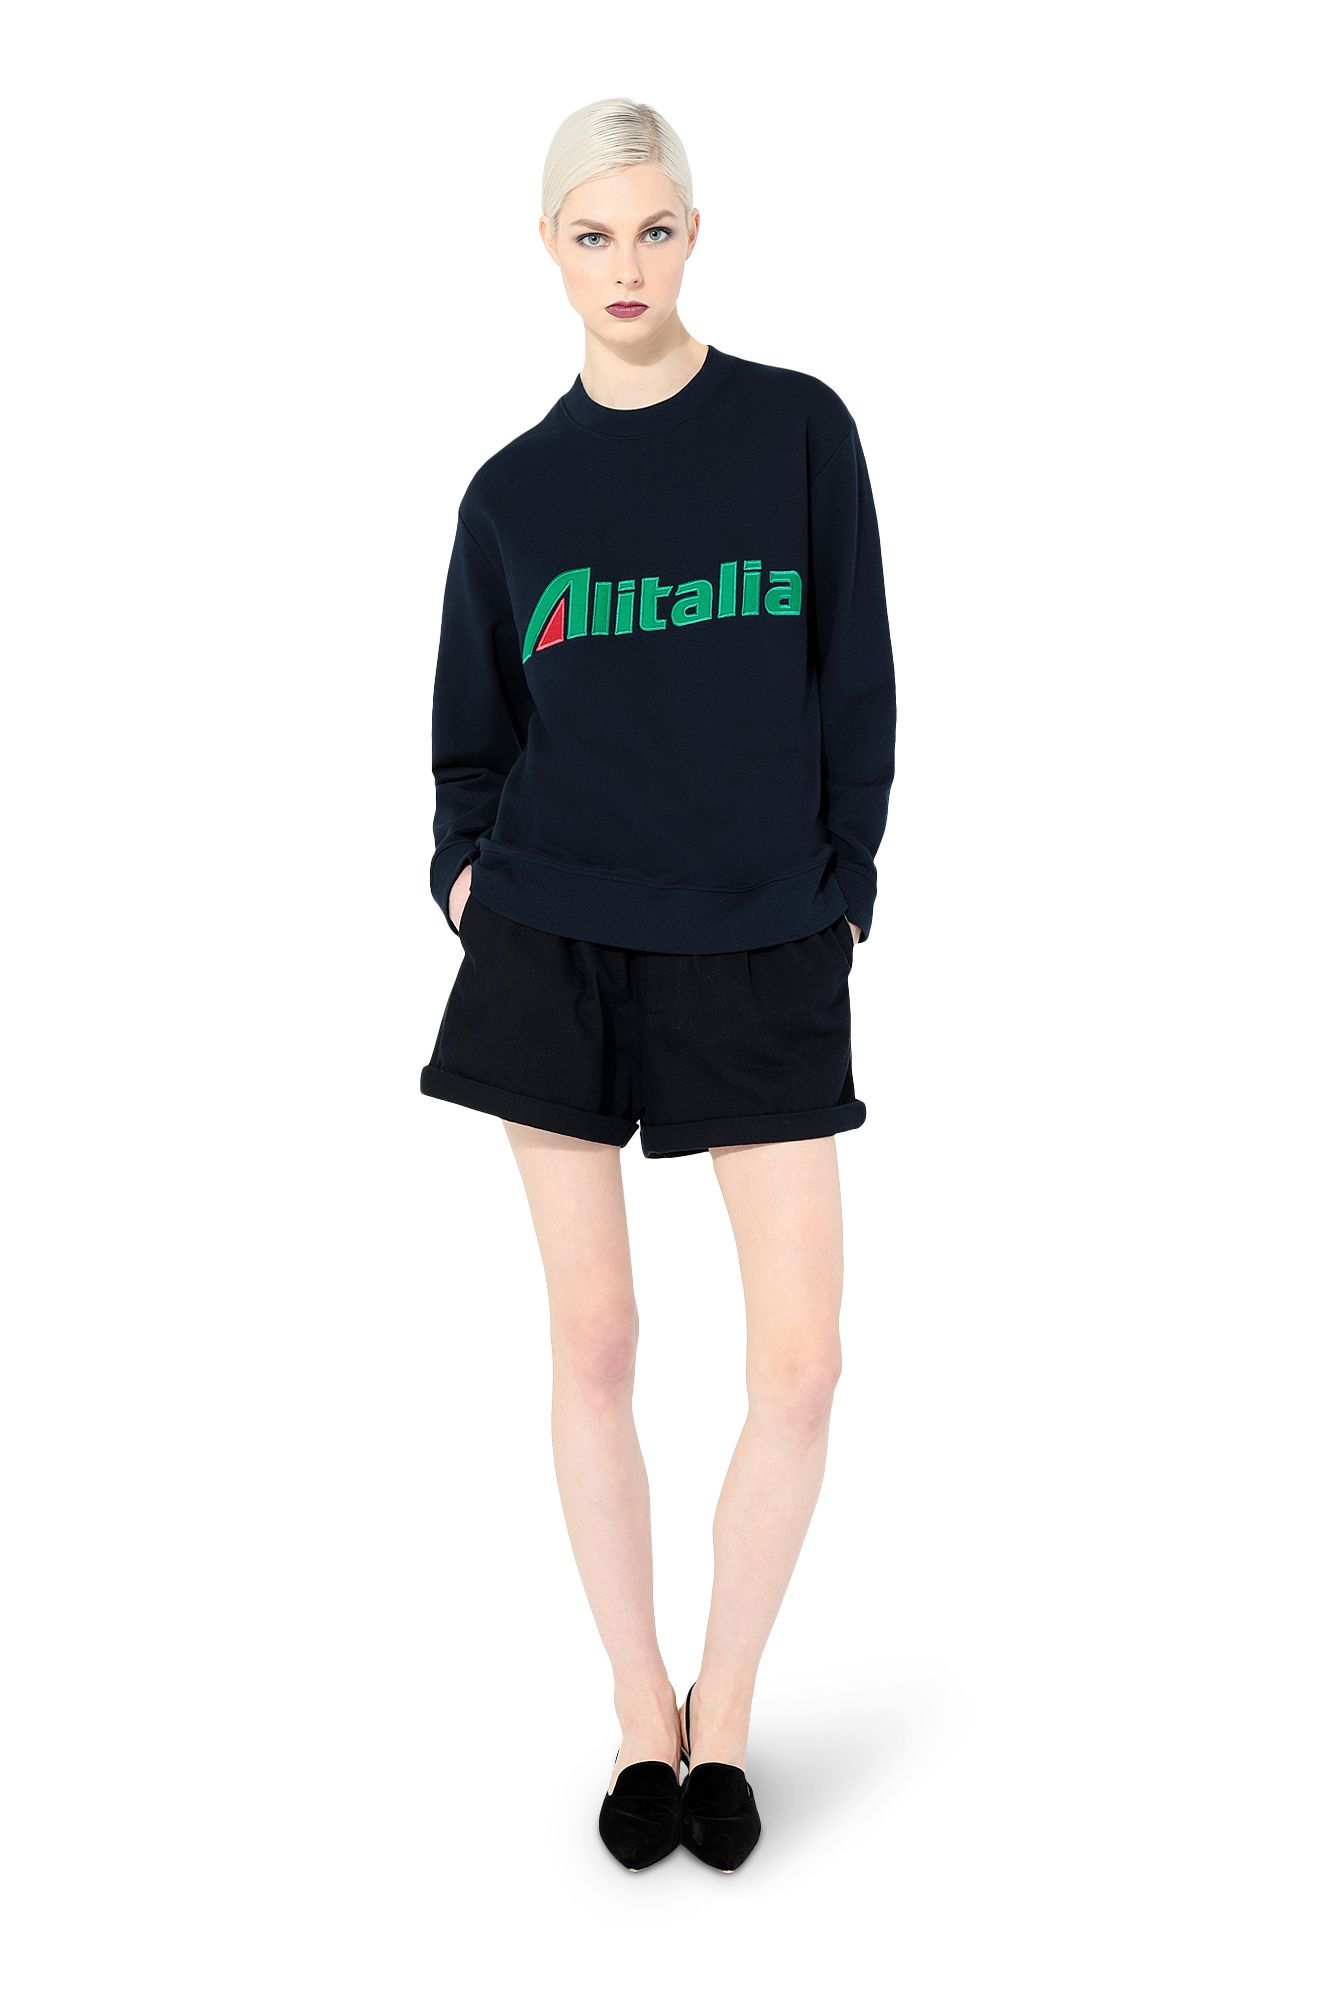 Sweatshirt embroidered with Alitalia logo